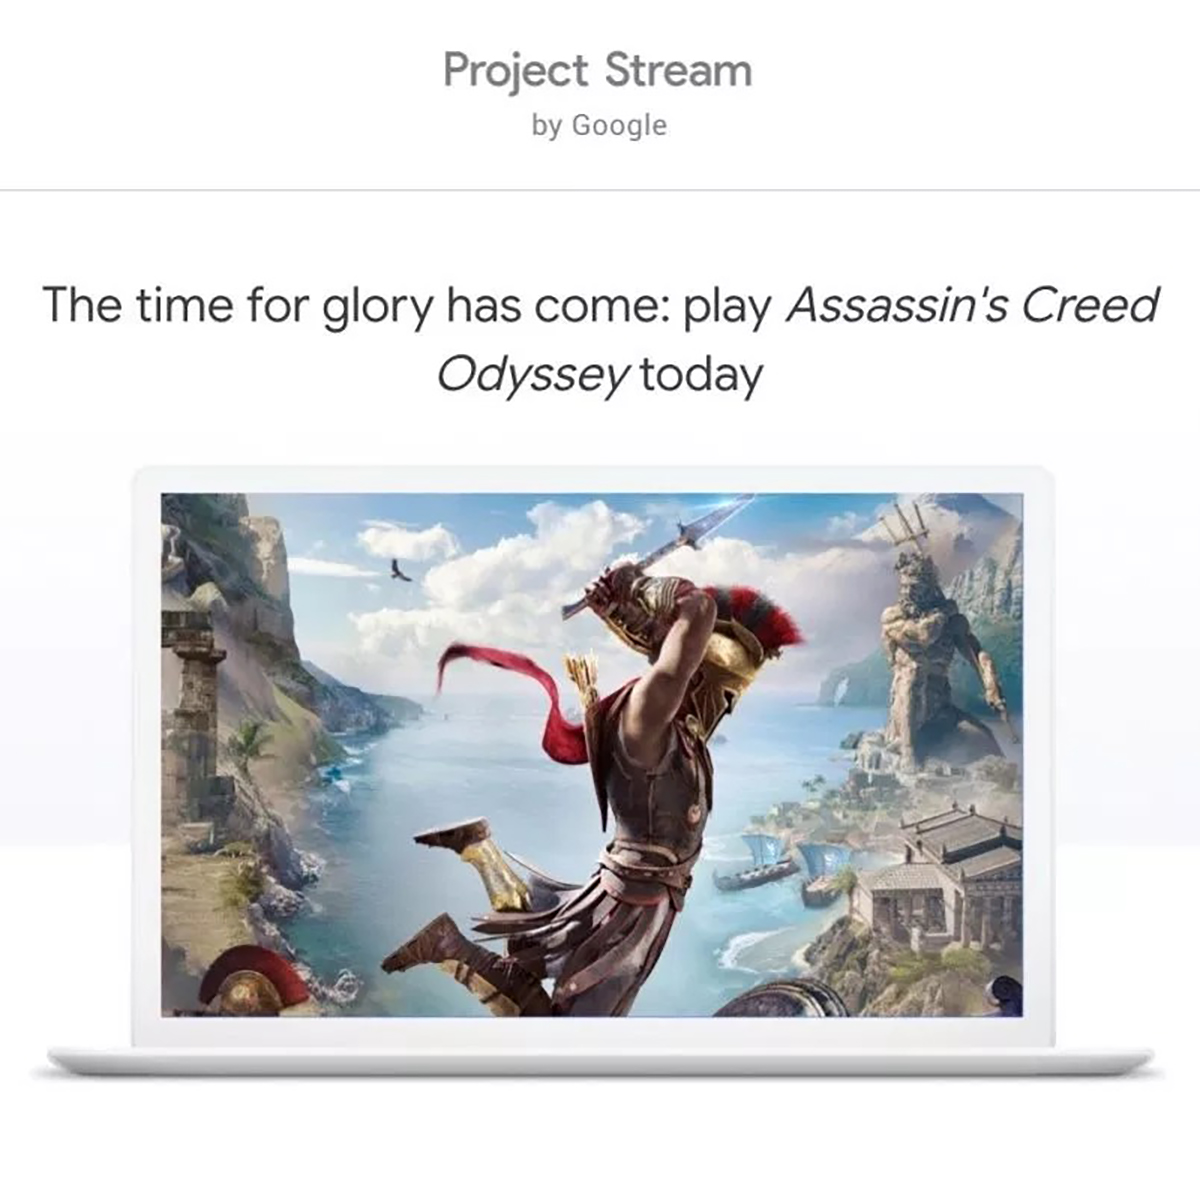 google-project-stream-invites